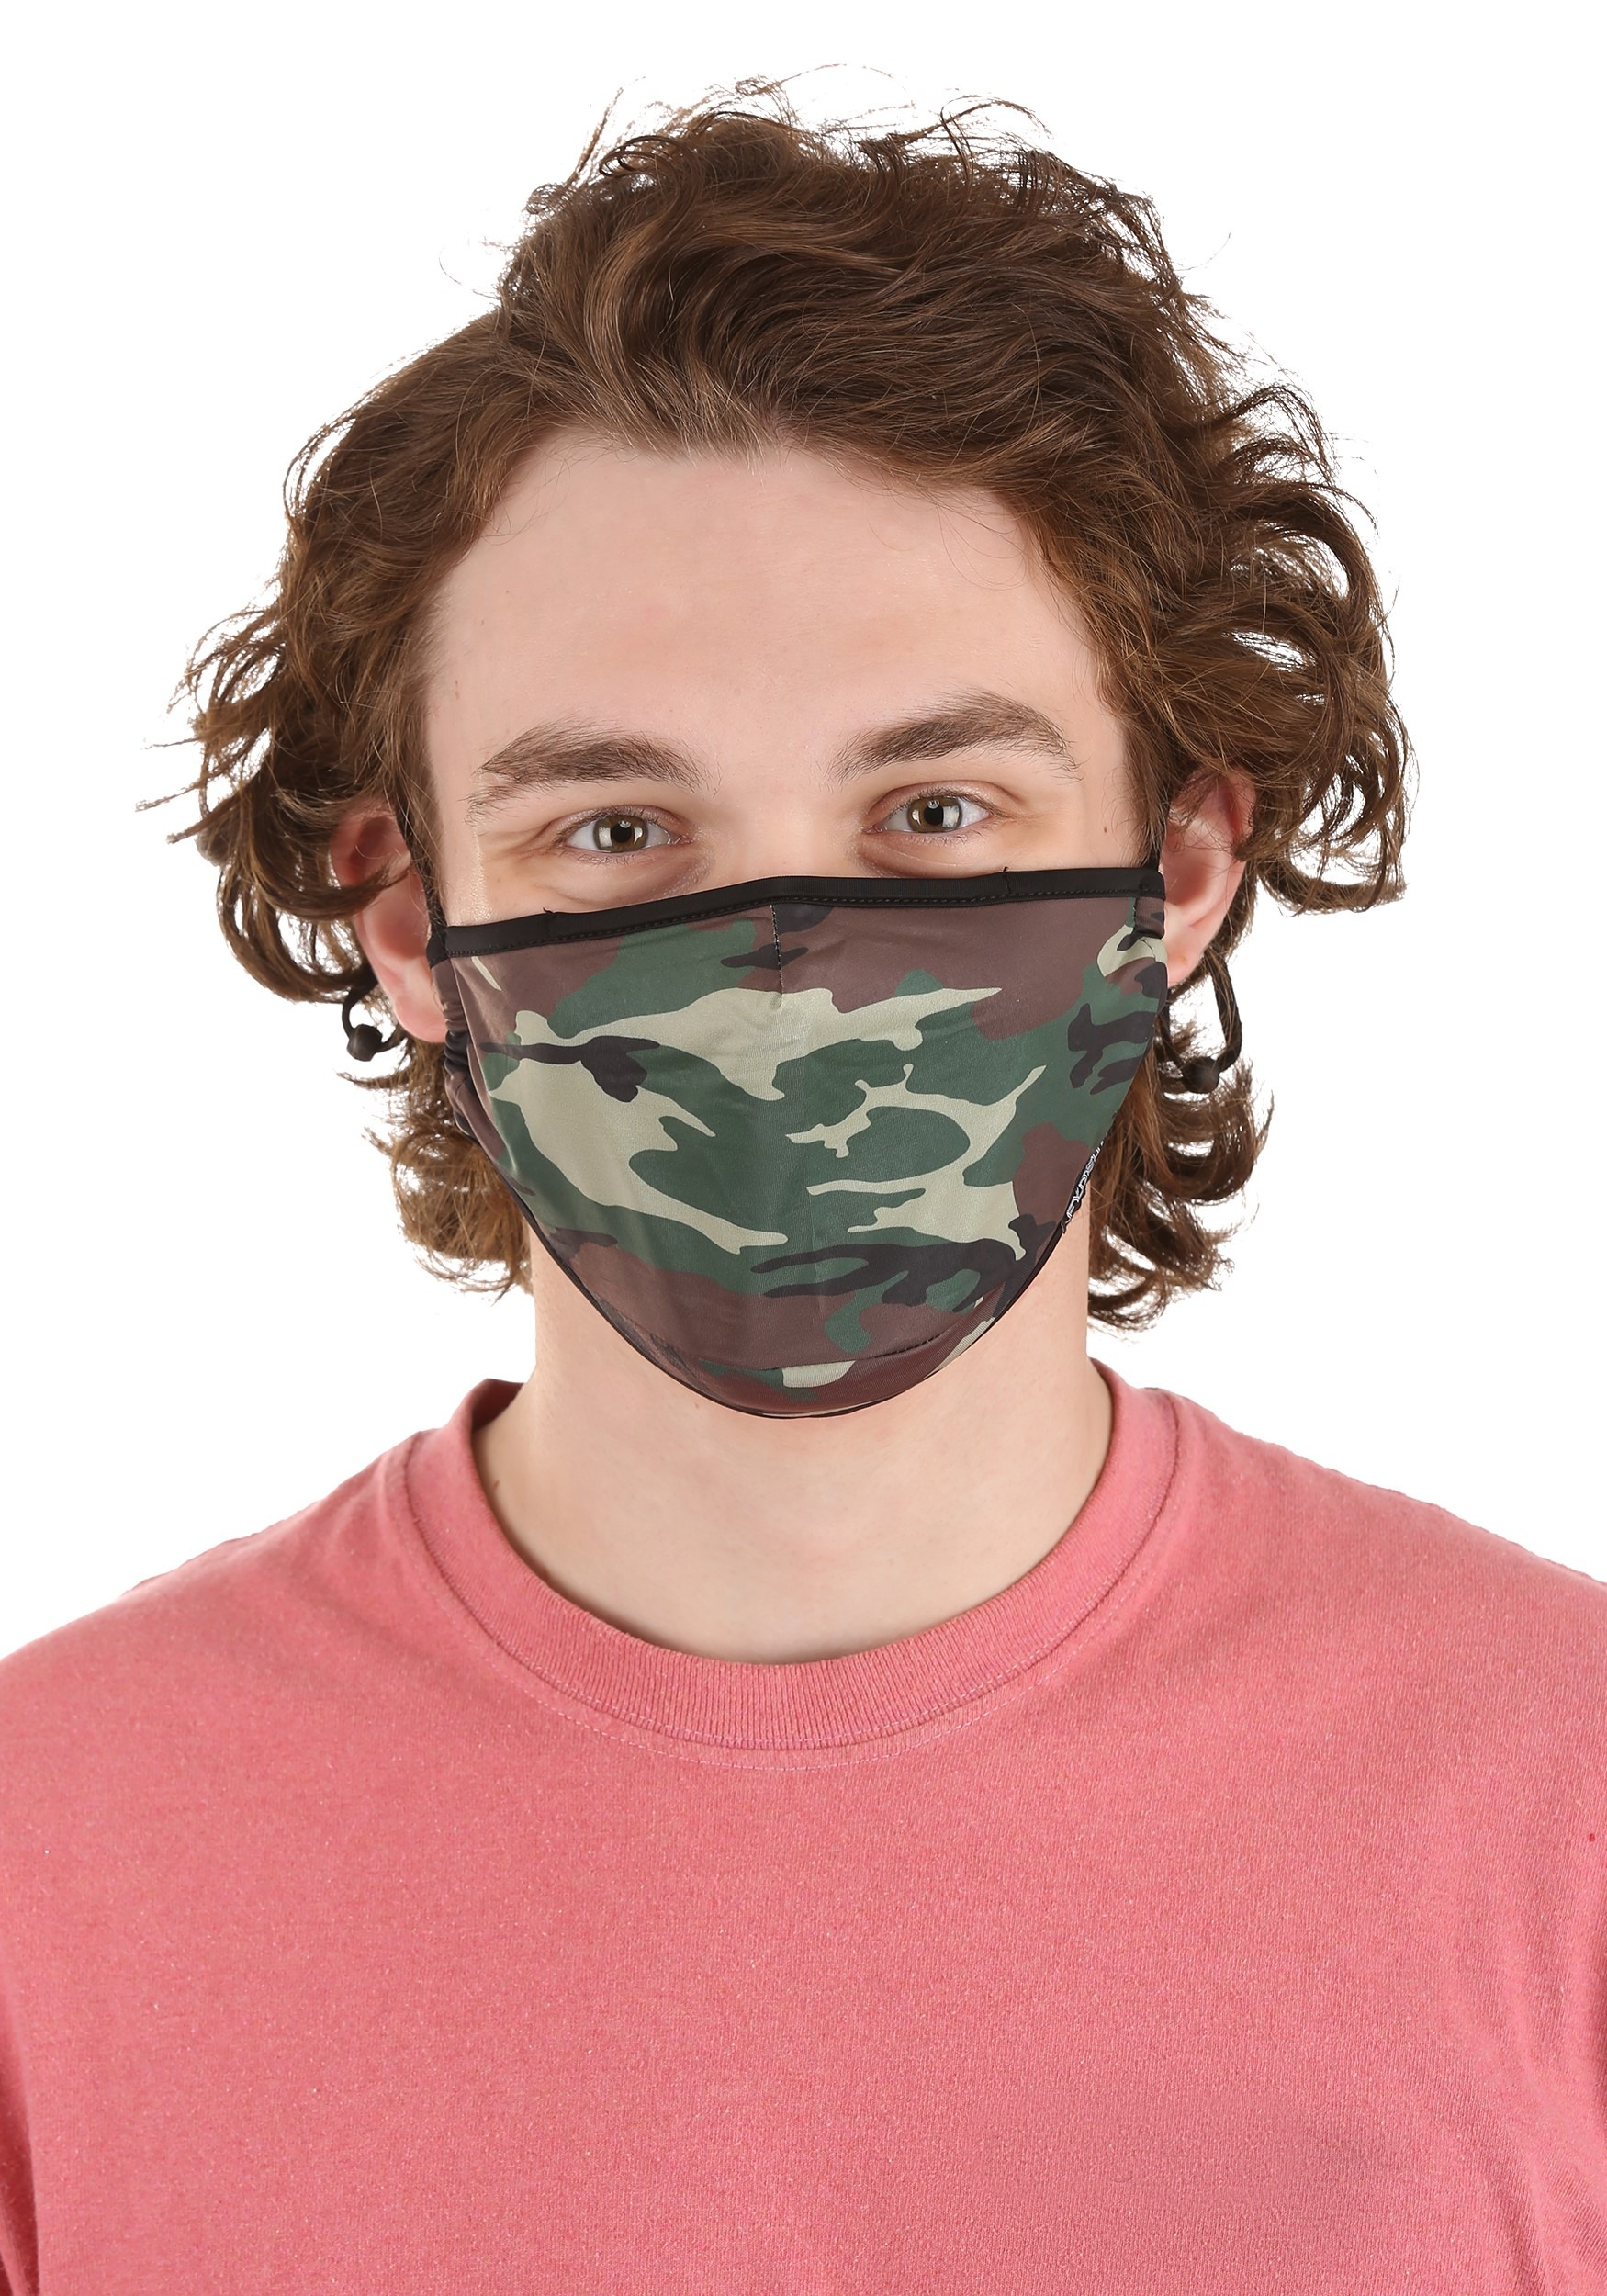 Protective Camo Fabric Face Covering Mask